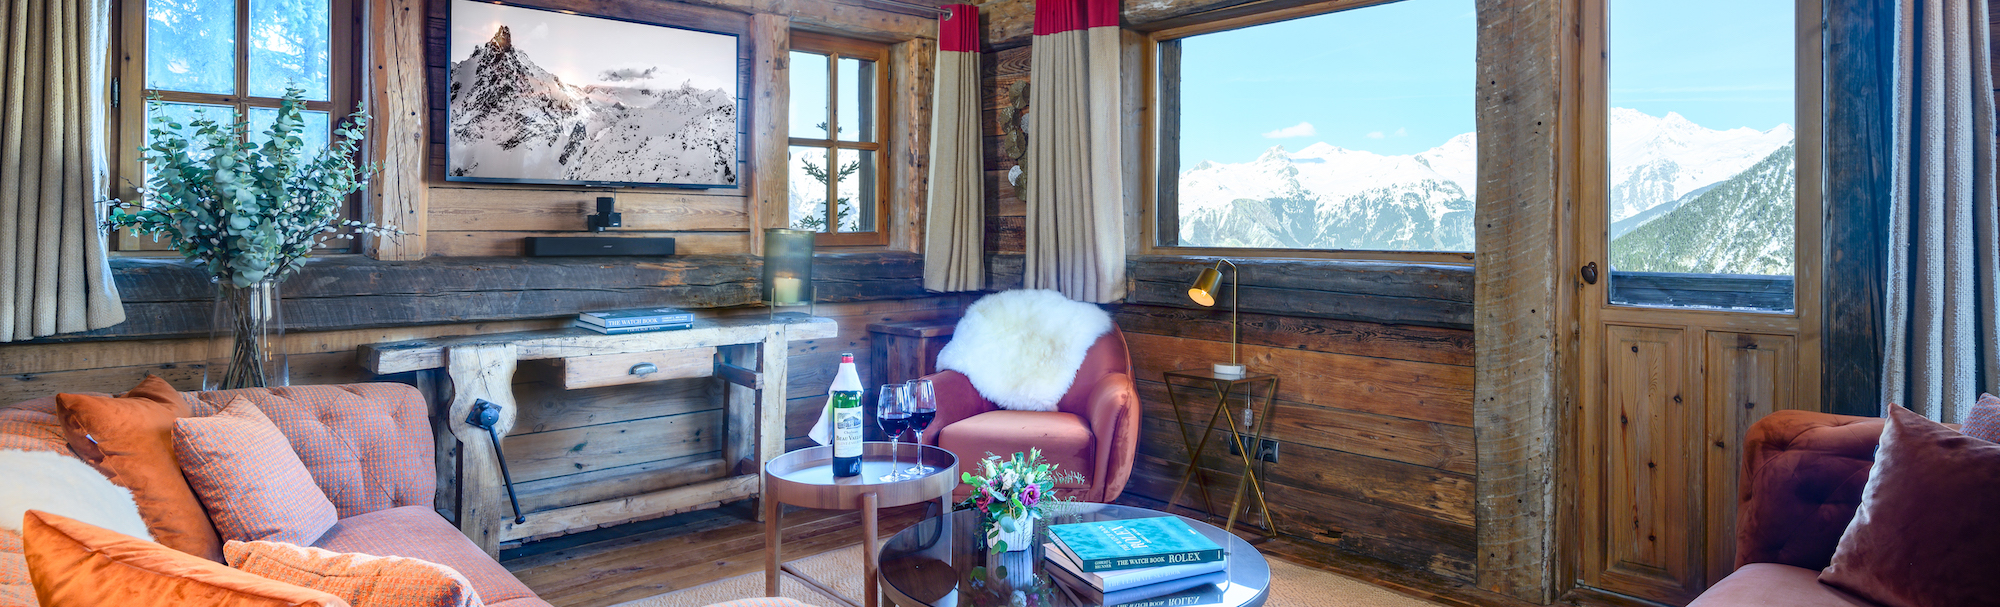 Montana Snug view of Courchevel